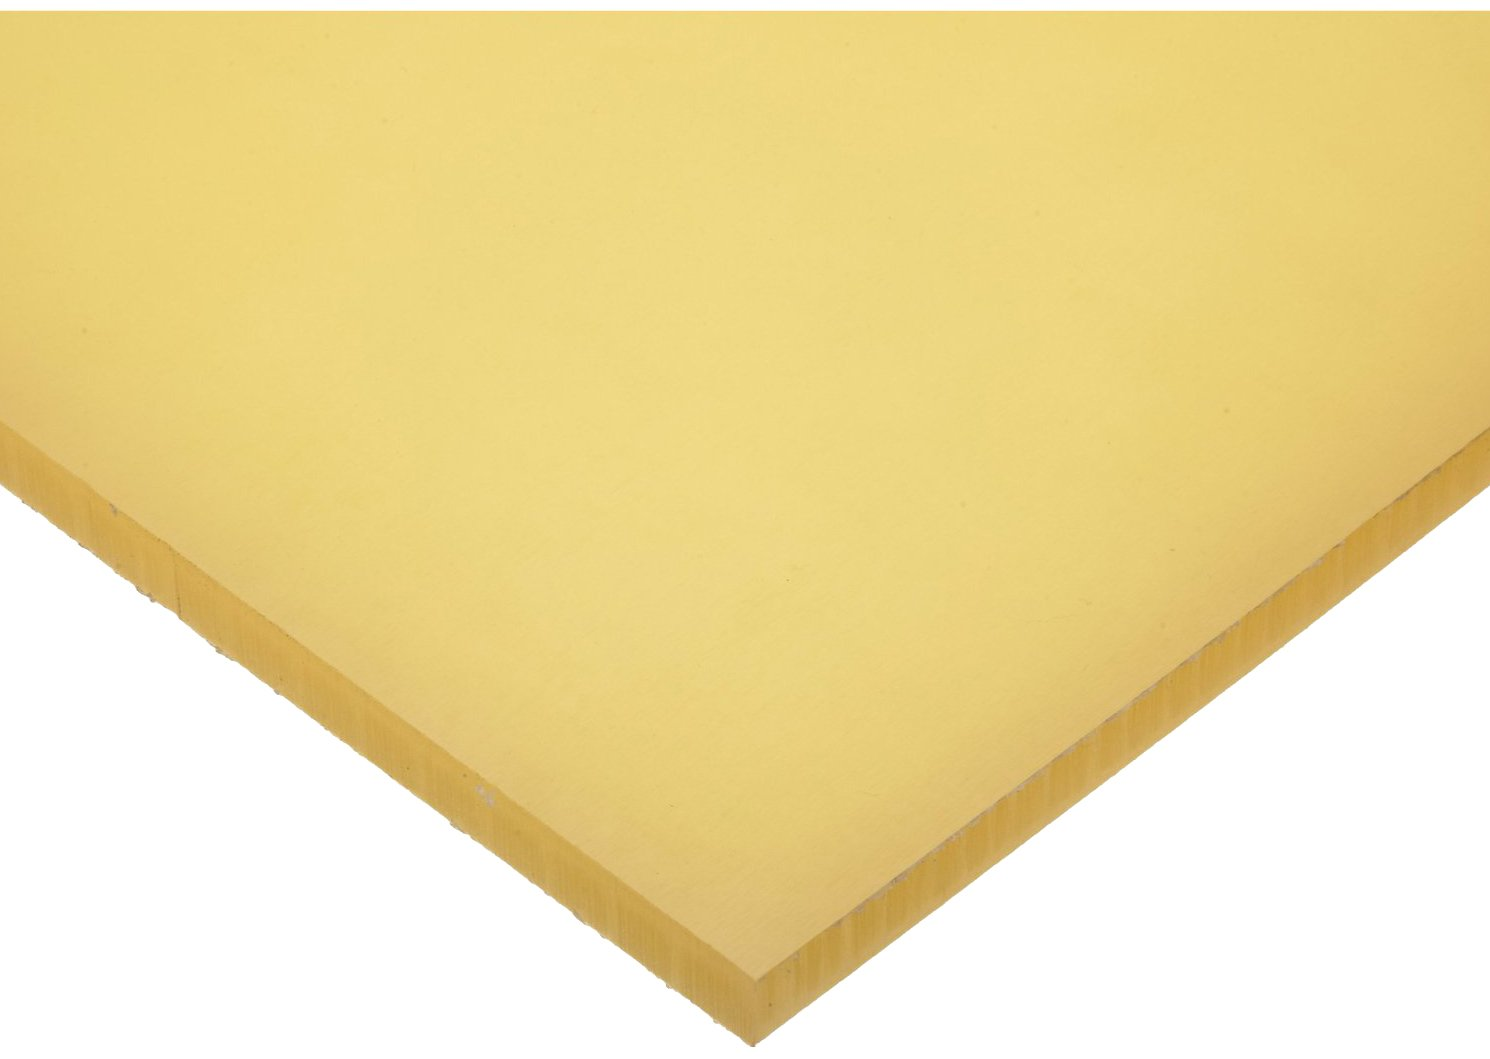 ASTM D-624 No Backing 60A Polyurethane Sheet Amber Smooth 6 Width 6 Length 1//4 Thick